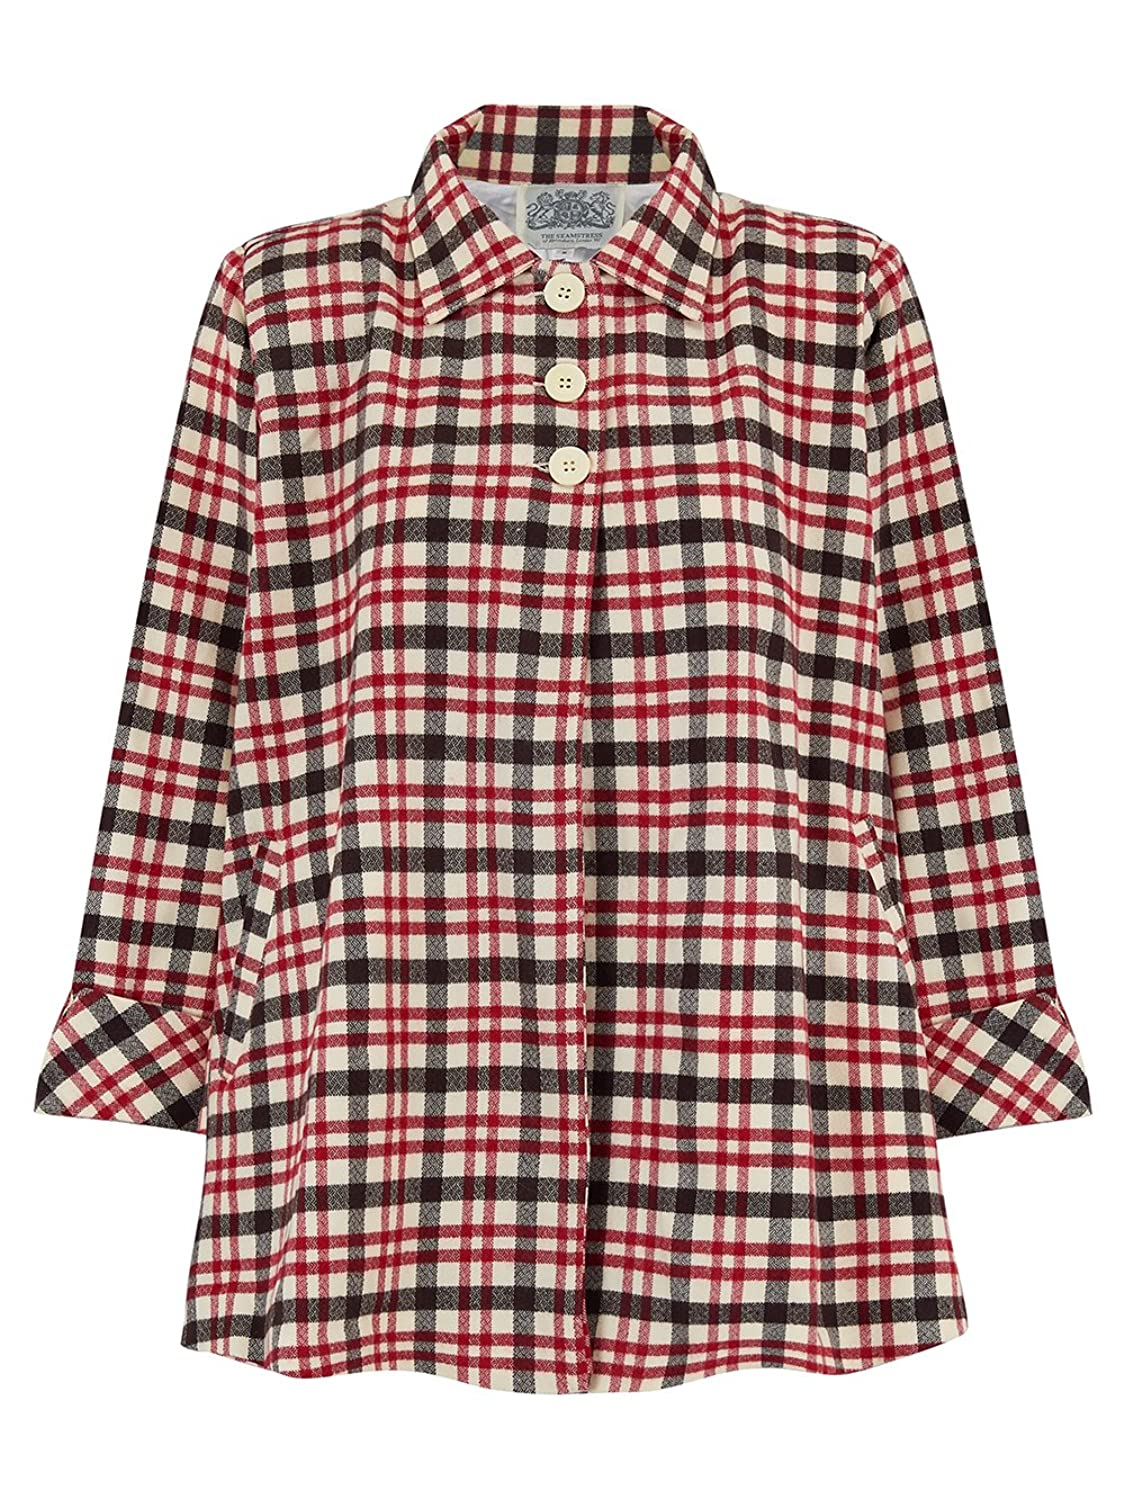 1940s Coats & Jackets Fashion History 1940s Inspired Vintage Swing Jacket in Red/White Check by The Seamstress of Bloomsbury £125.00 AT vintagedancer.com